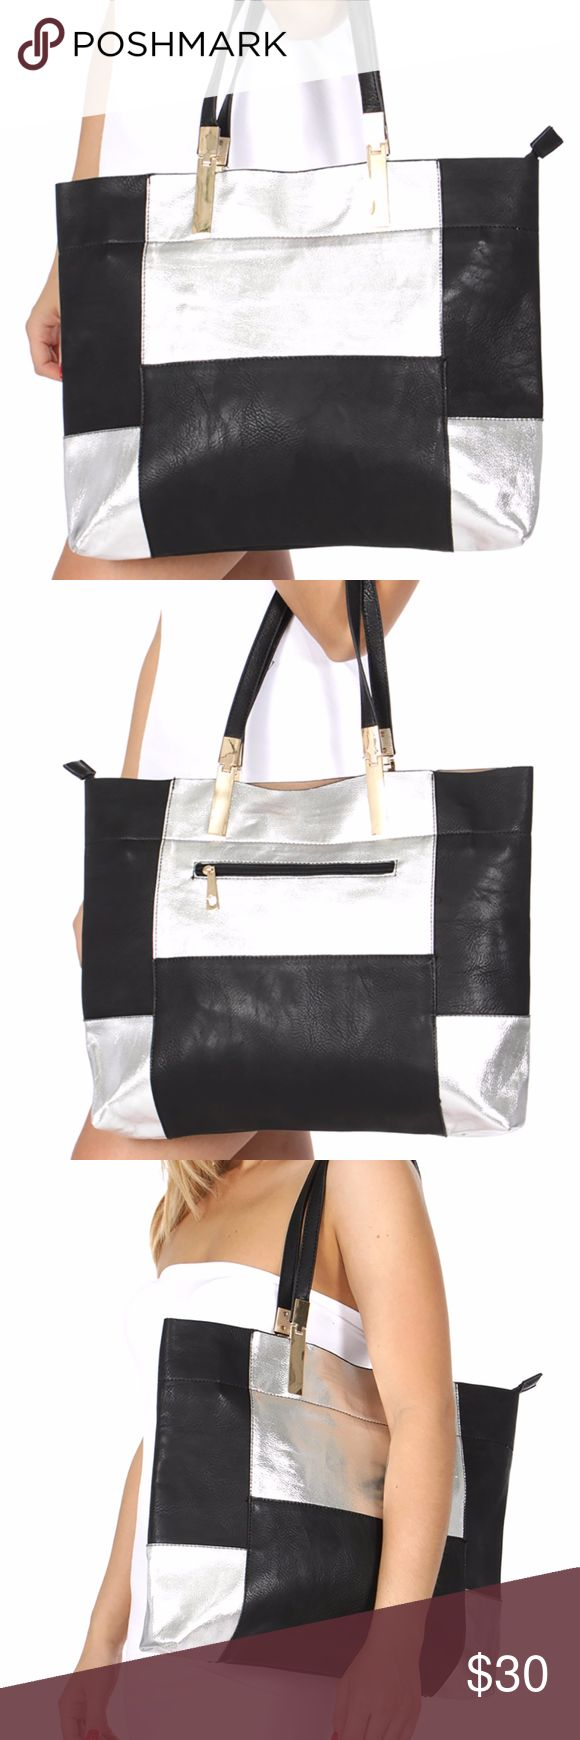 Black & Silver Tote Handbag Faux leather black and silver tote. Bags Totes